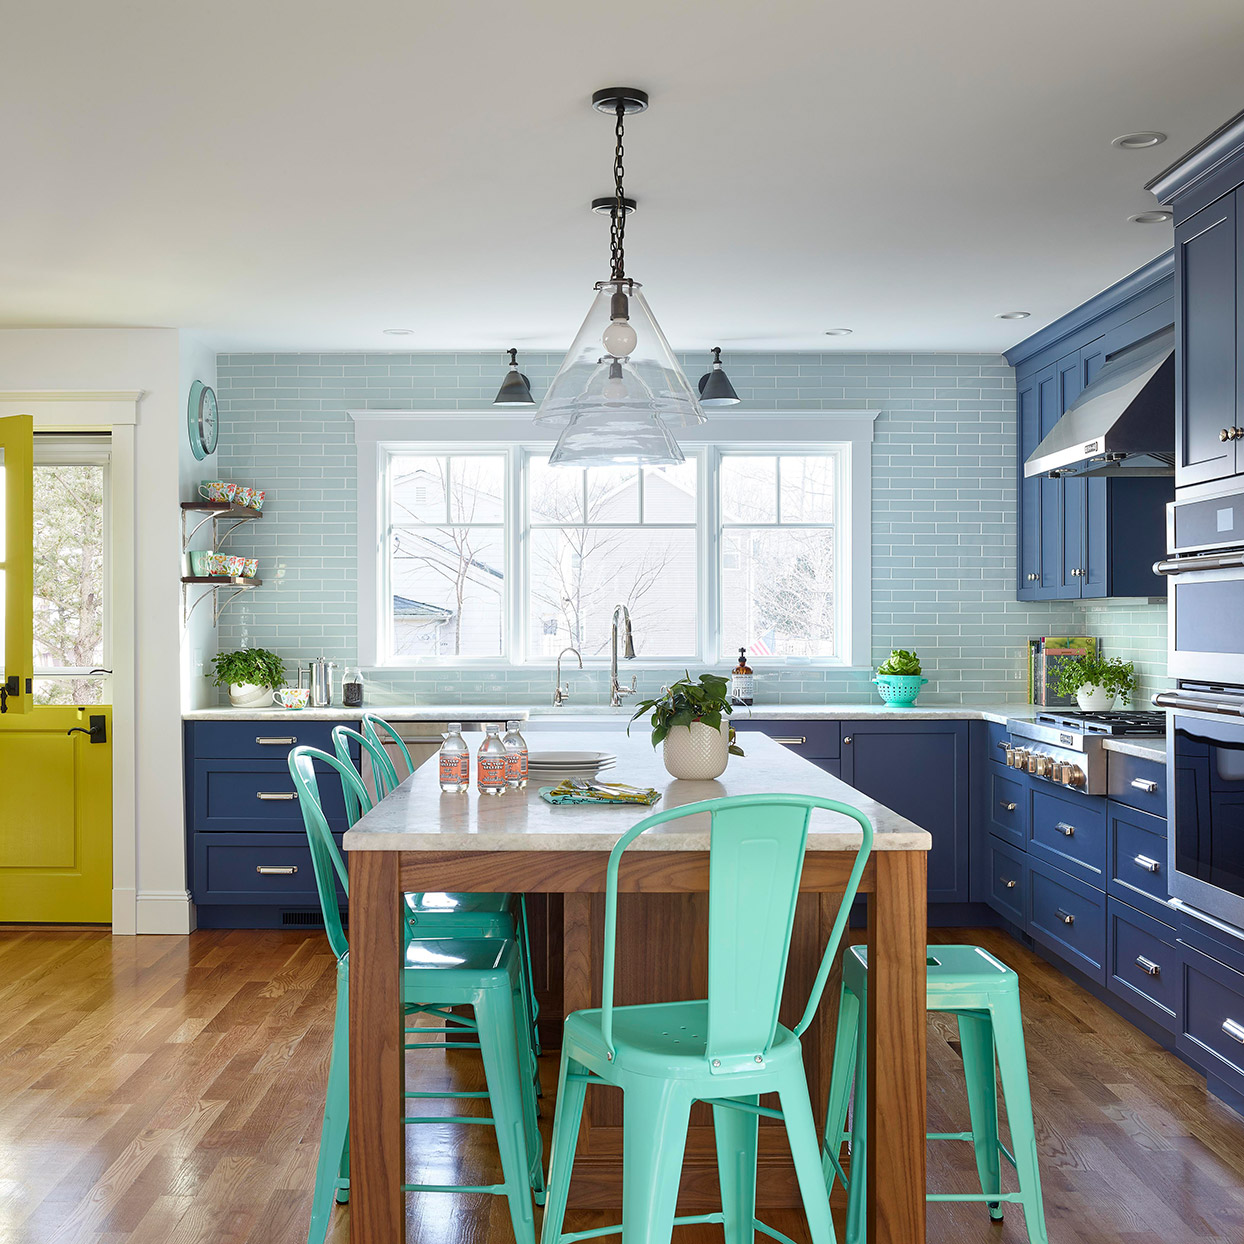 See This Boston Kitchen's Radical Before-and-After Renovation